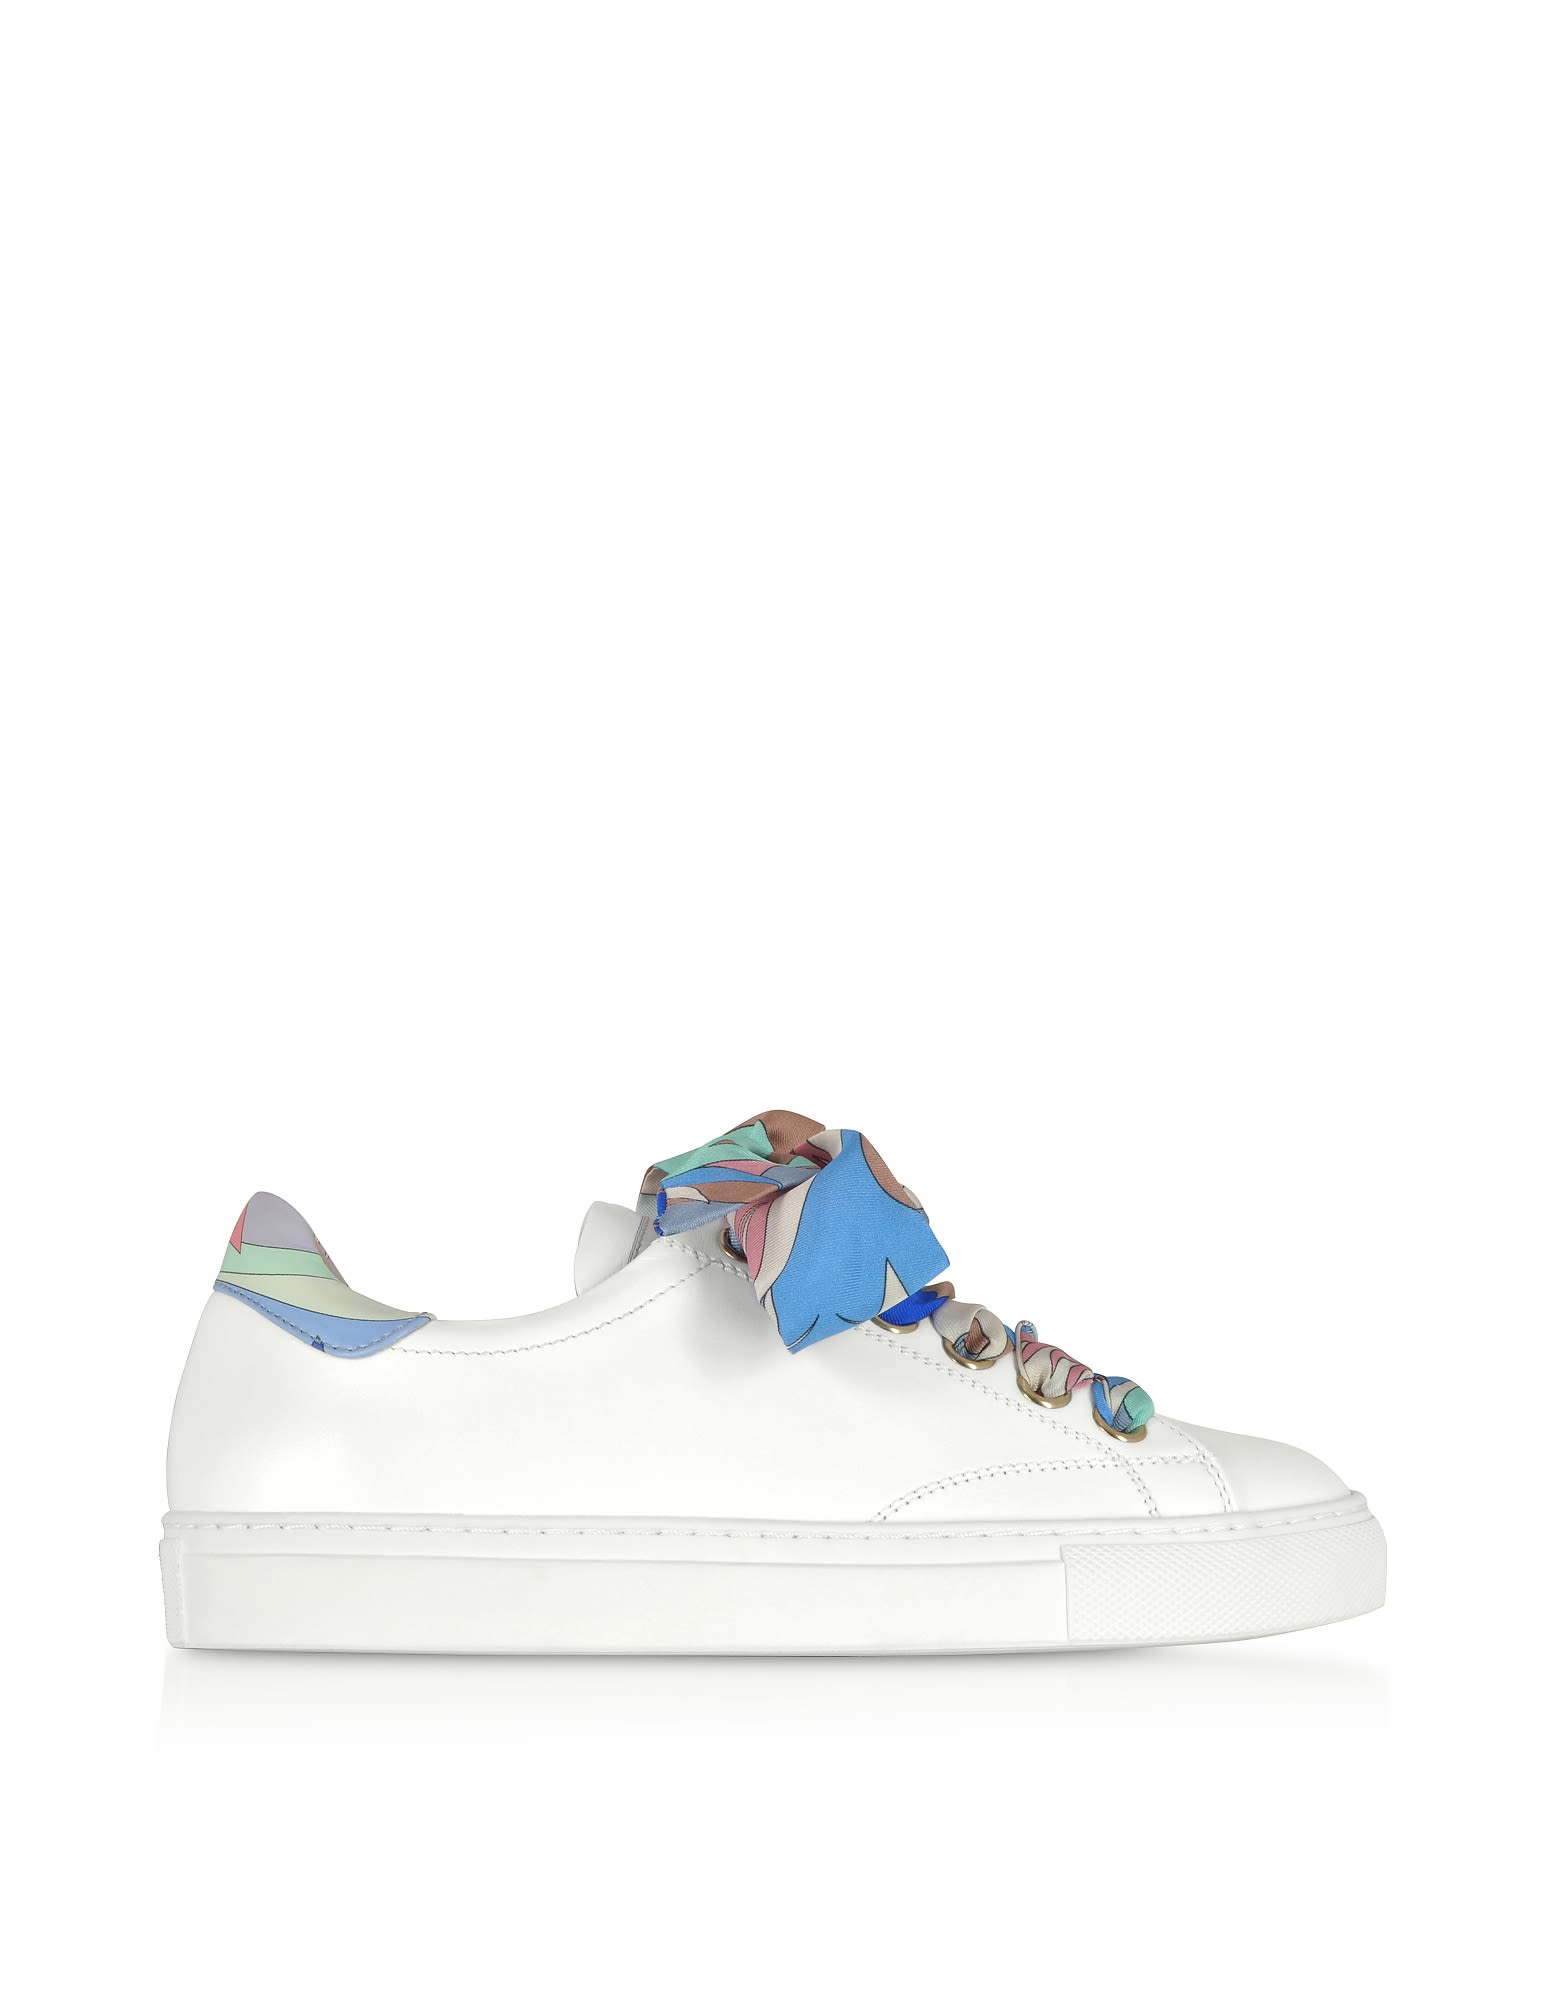 a49612818a4 Emilio Pucci White Leather Low-top Sneakers W silk Printed Laces